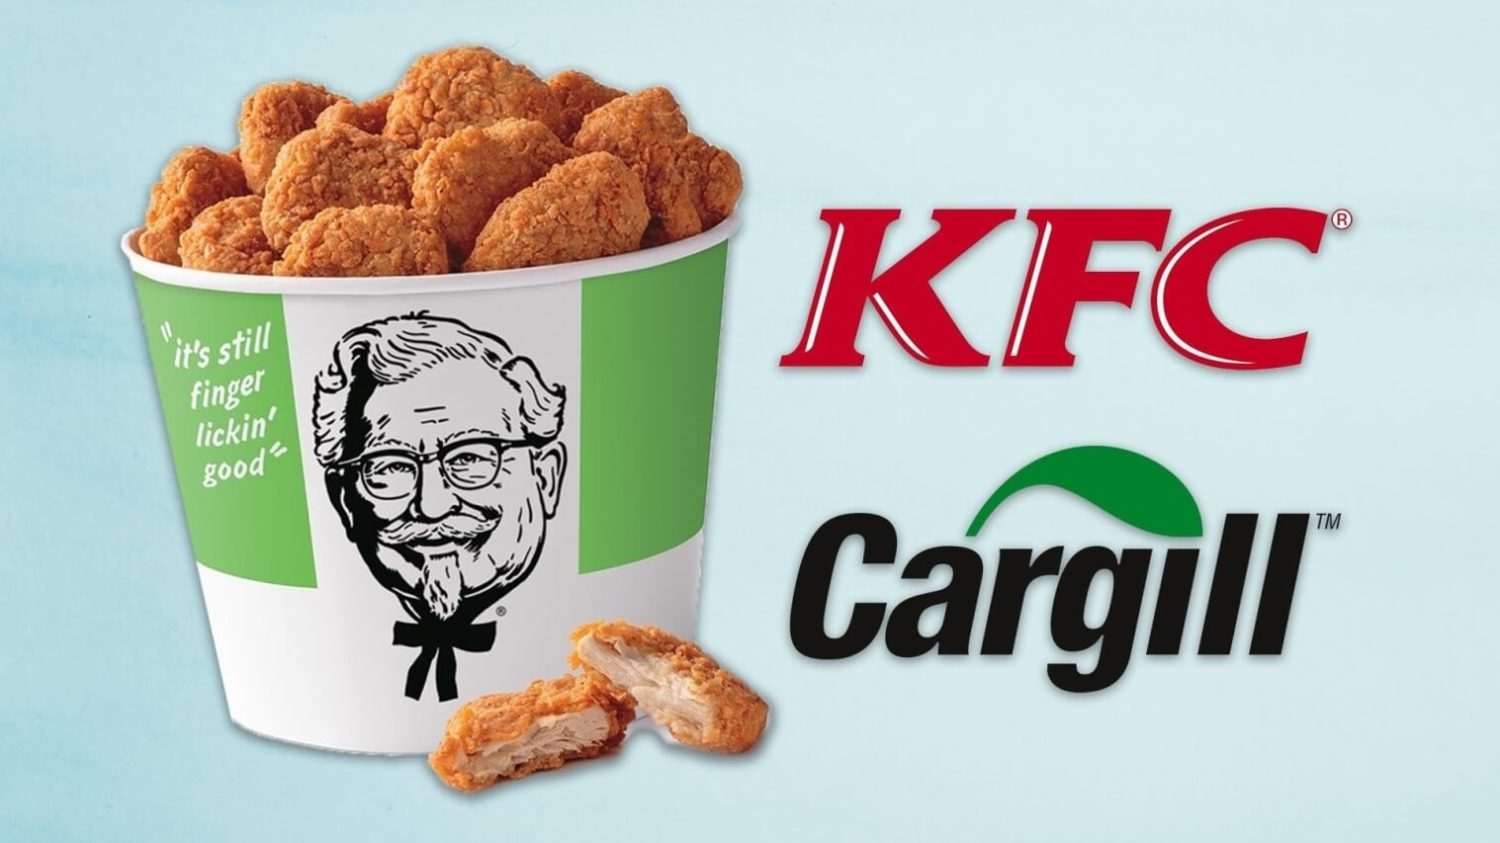 KFC in China to Sell Vegan Chicken Nuggets by Cargill